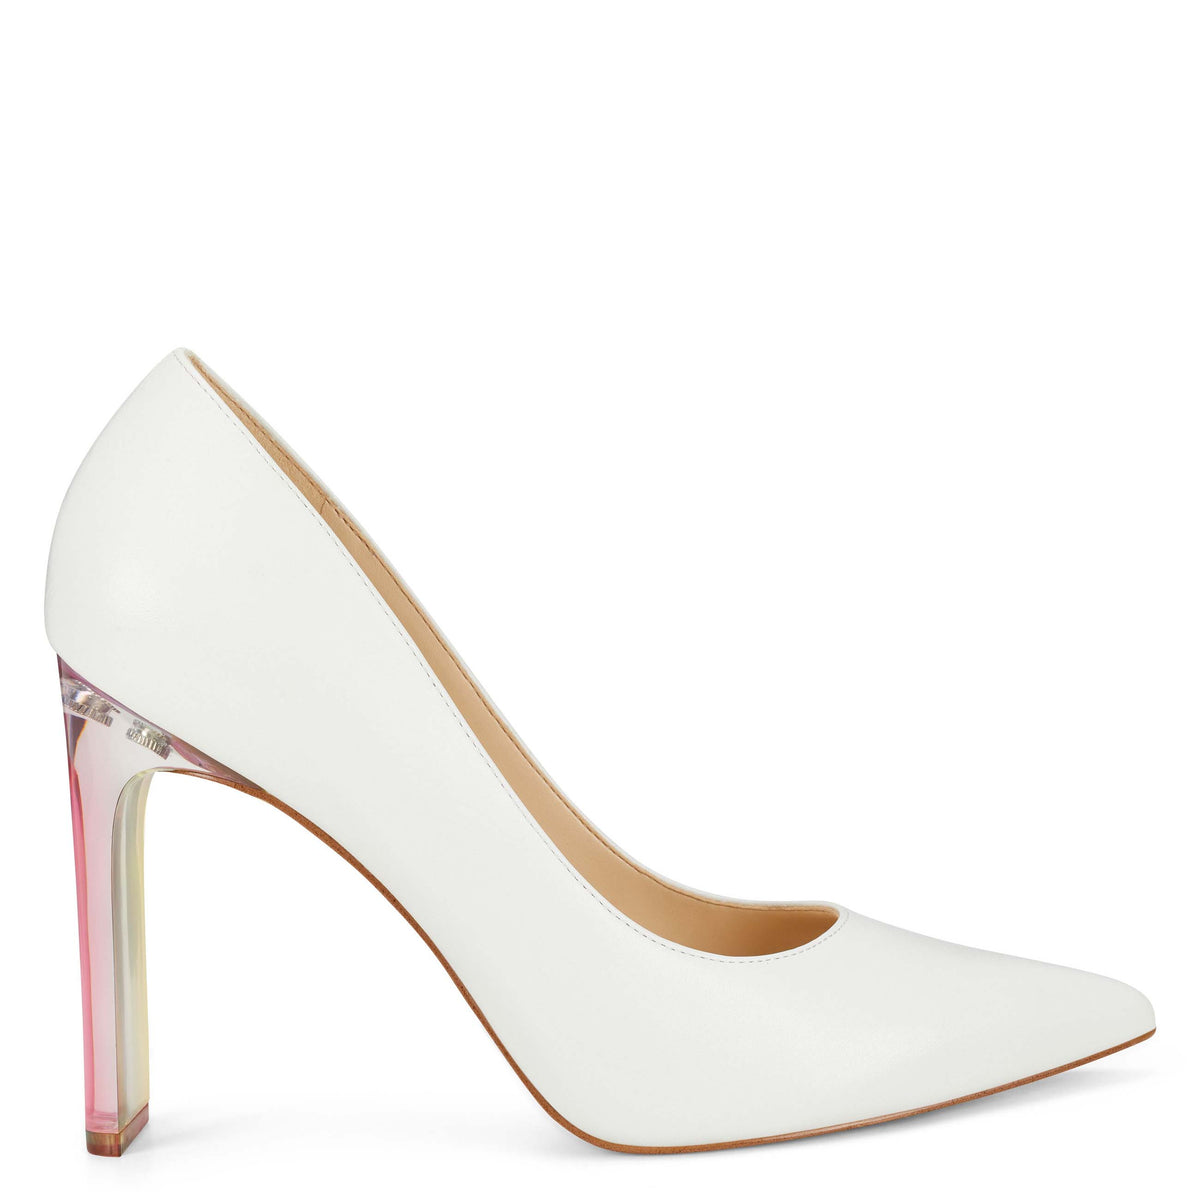 trixi-pointy-toe-pumps-in-white-leather